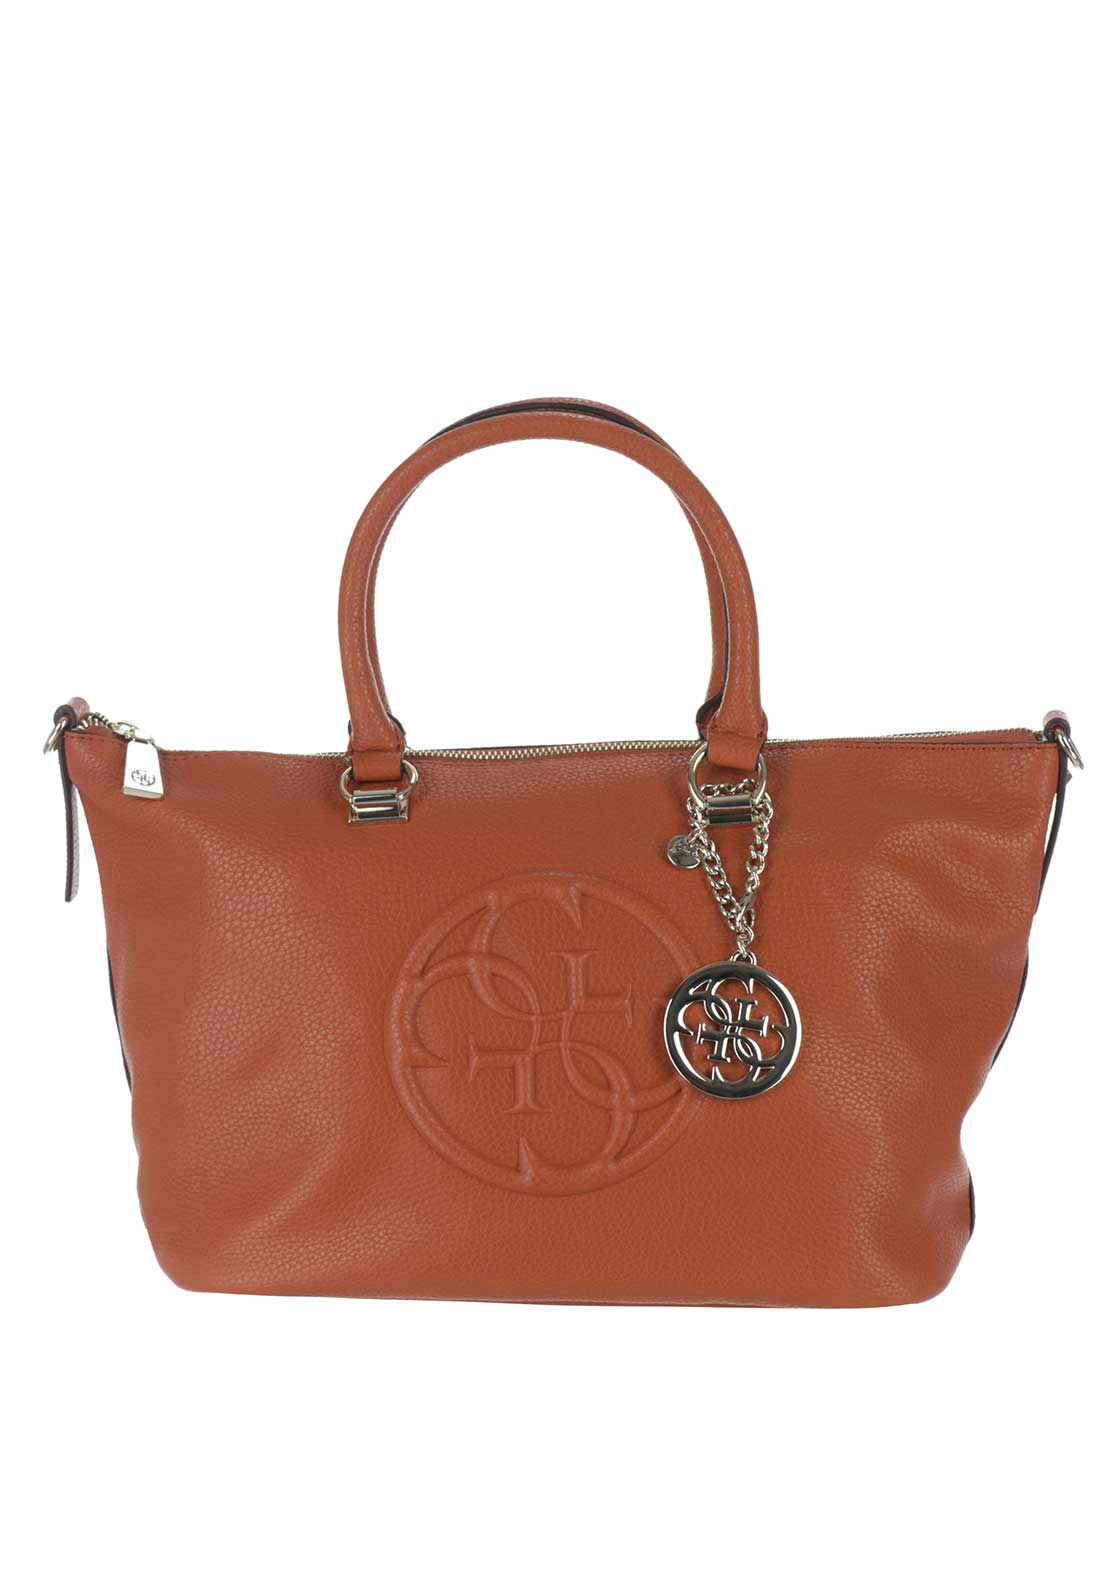 Guess Korry Crush Tote Bag, Spice